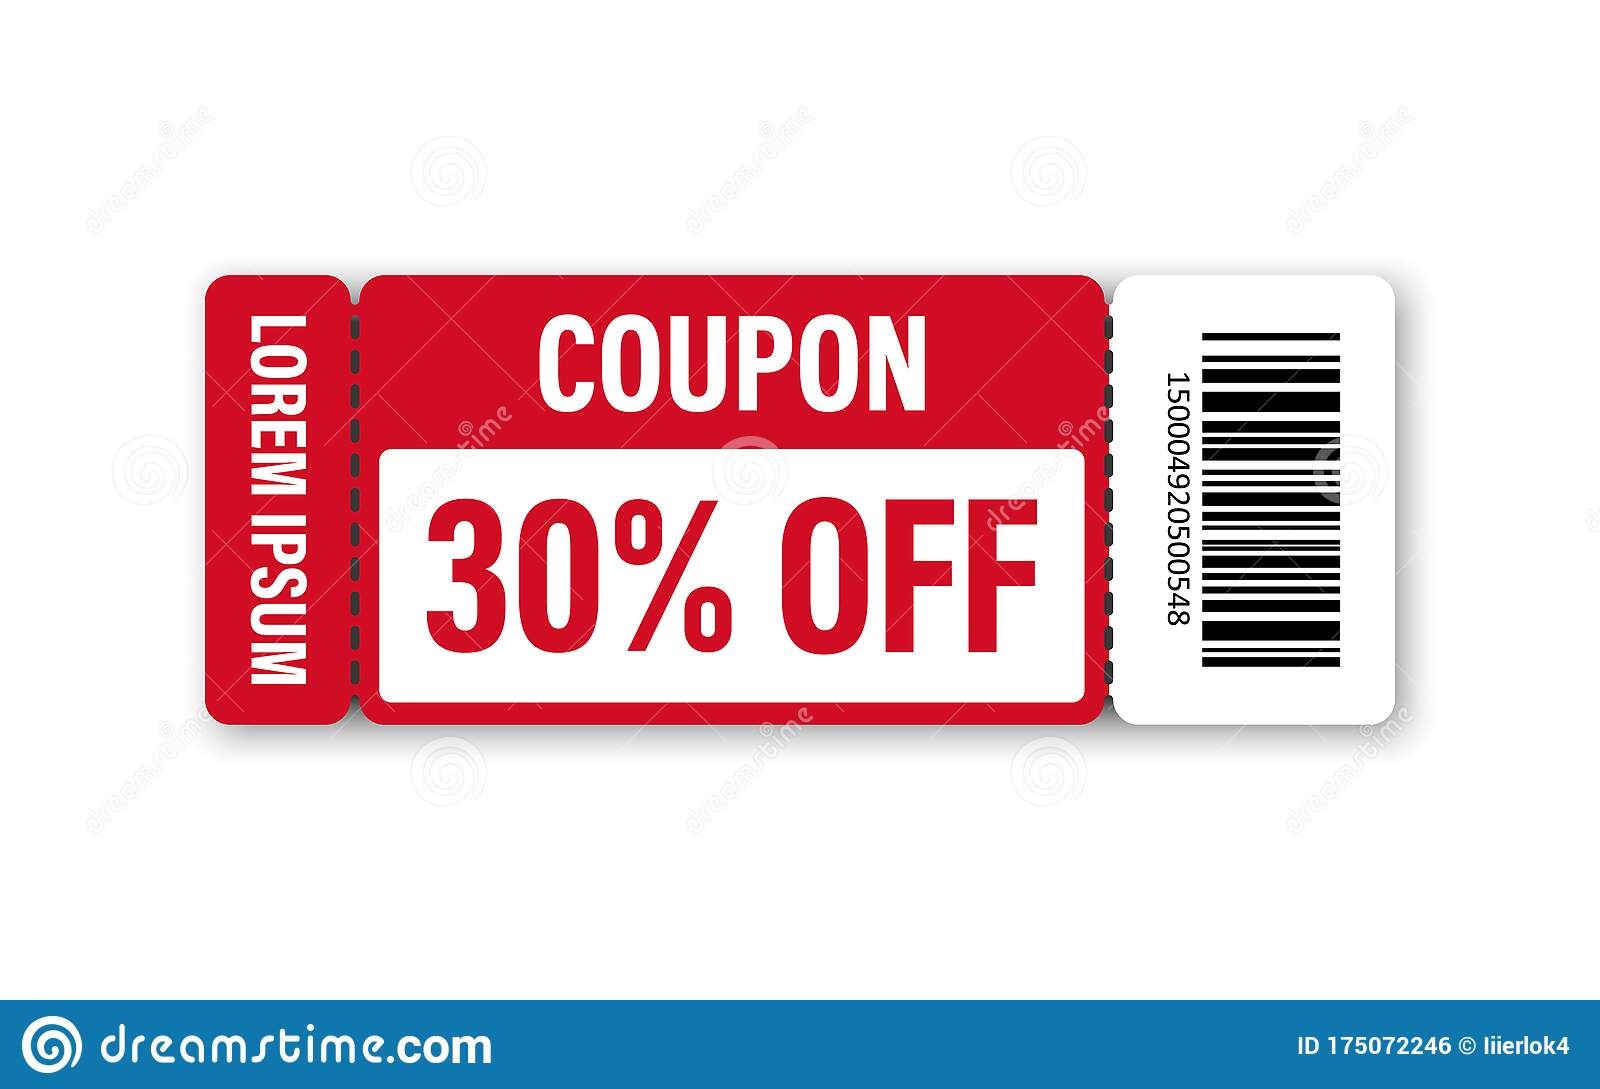 Set Of Template Coupon Gift Coupon Element Template Graphics Design Voucher Promo Code Shopping Marketing Food And Drink Stock Vector Illustration Of Paper Market 175072246